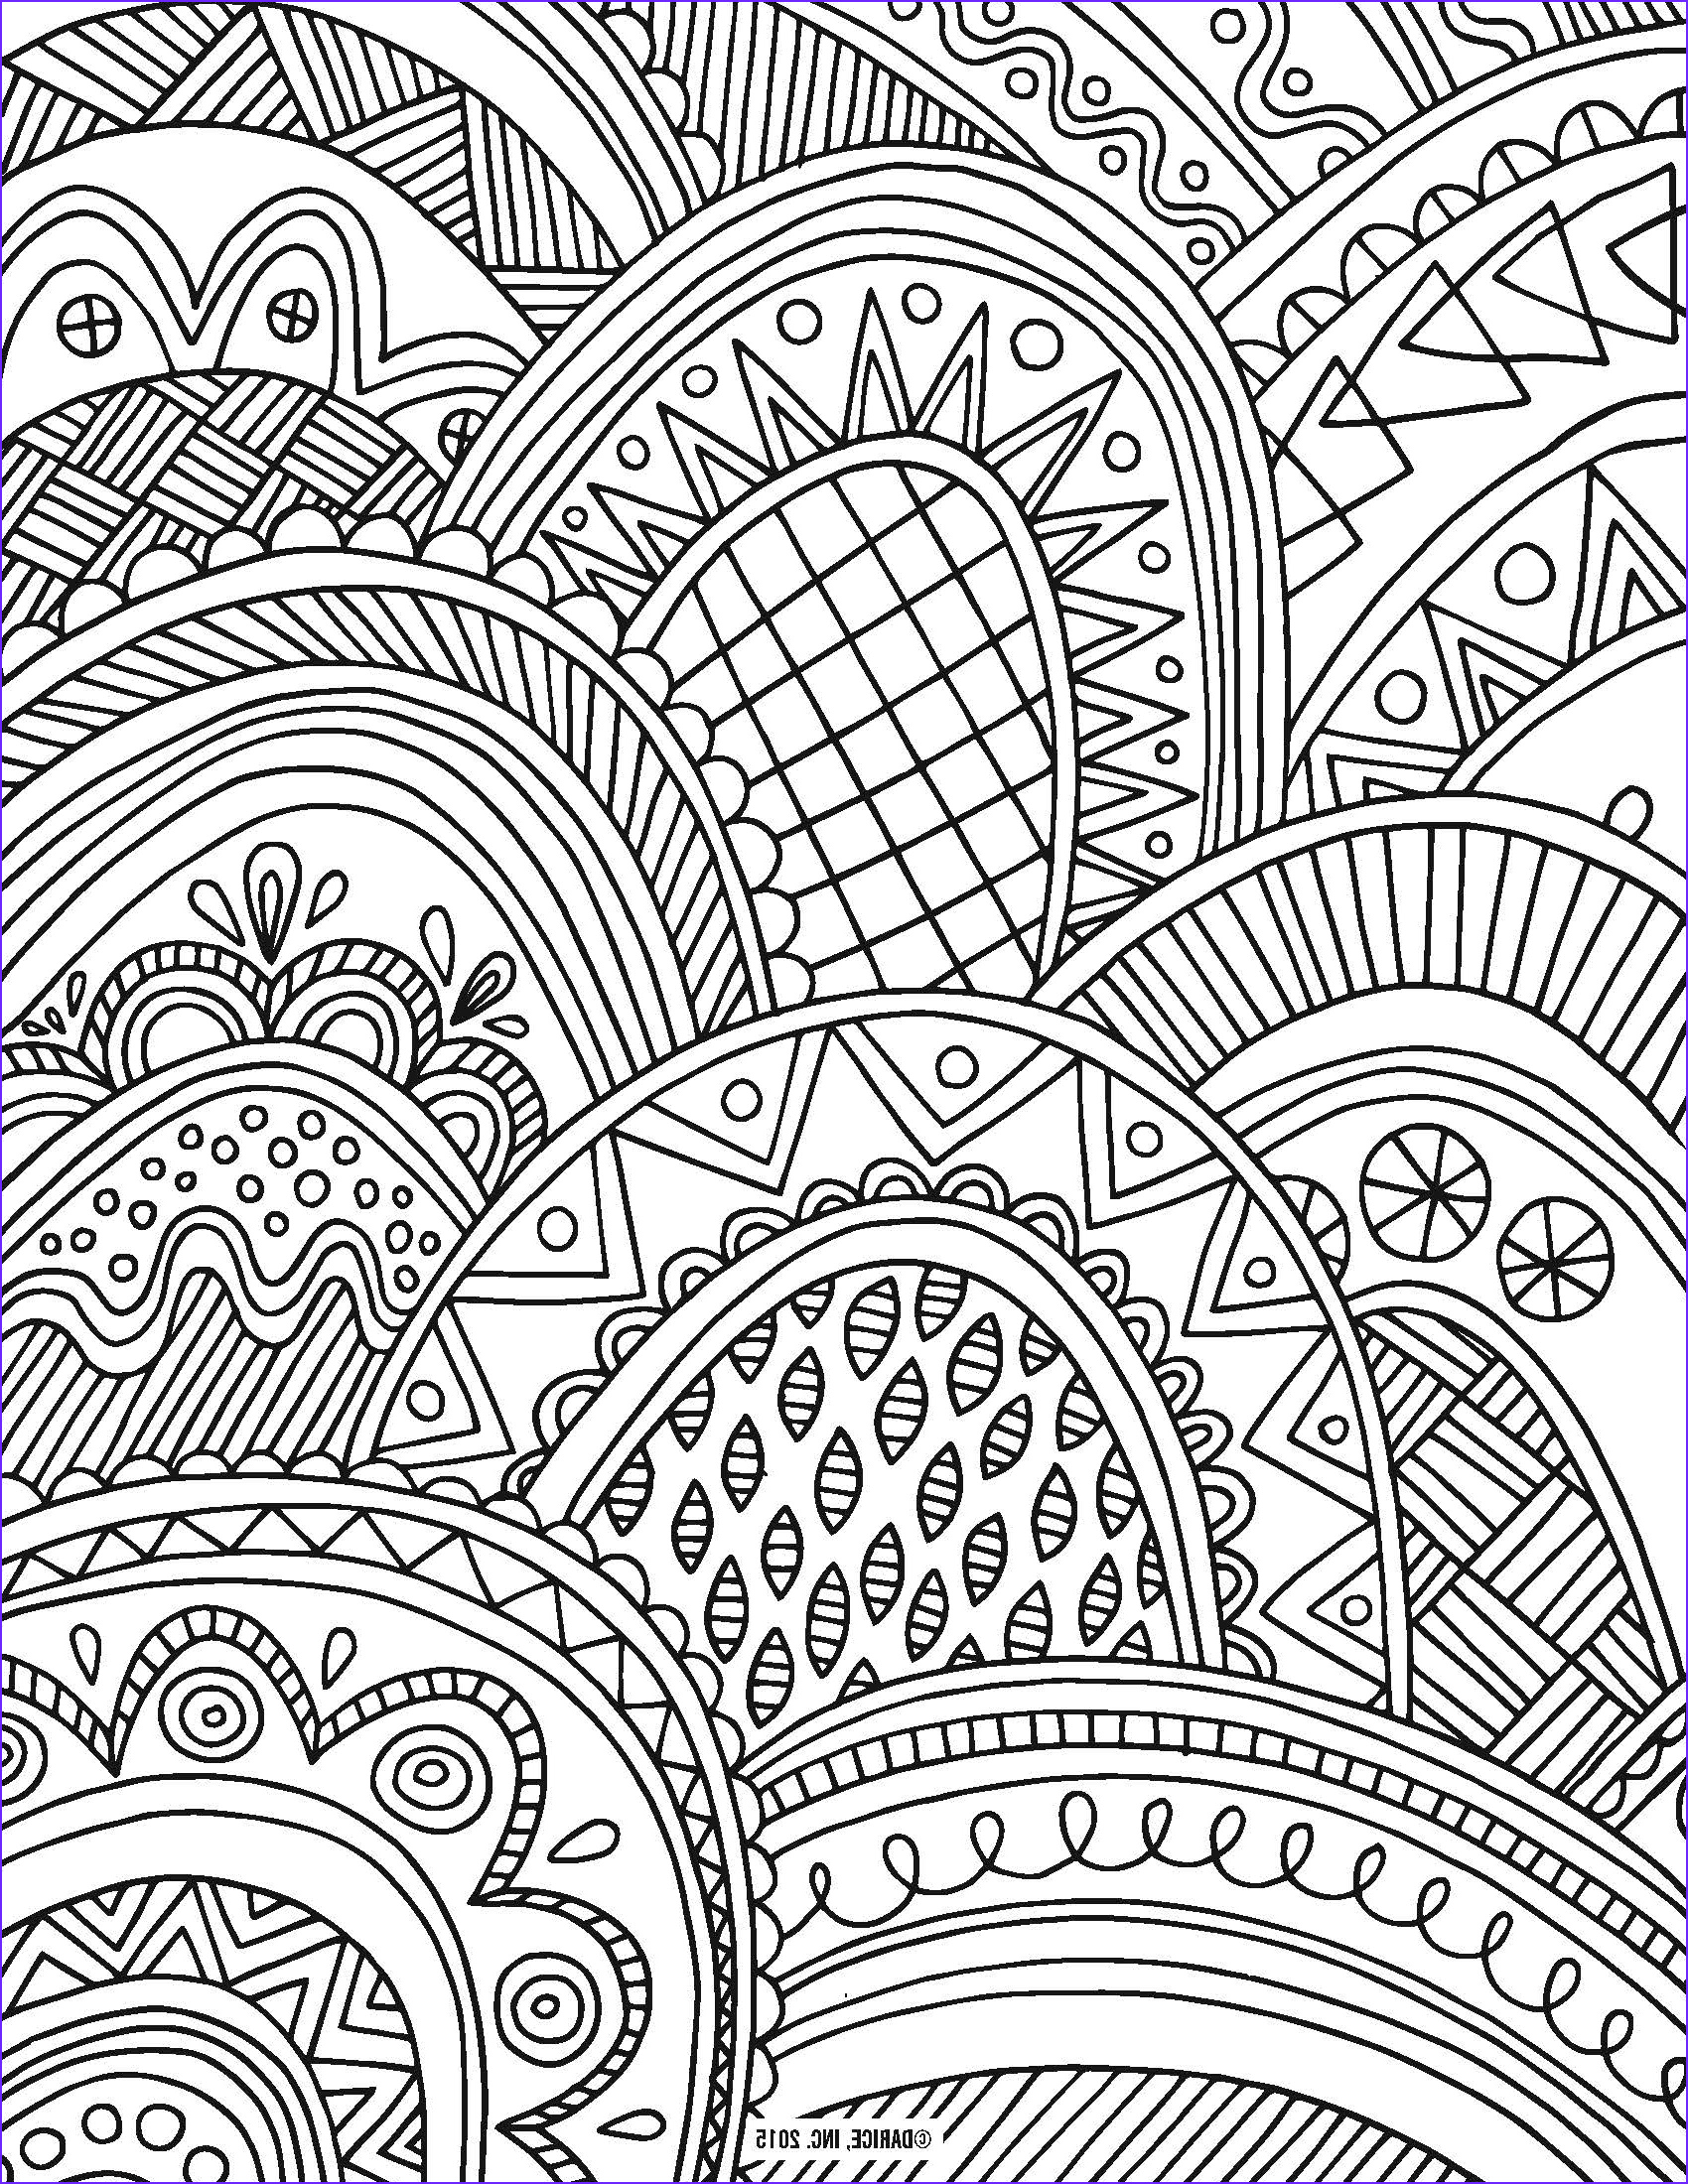 Color Coloring Book New Collection 40 top Free Coloring Pages We Need Fun